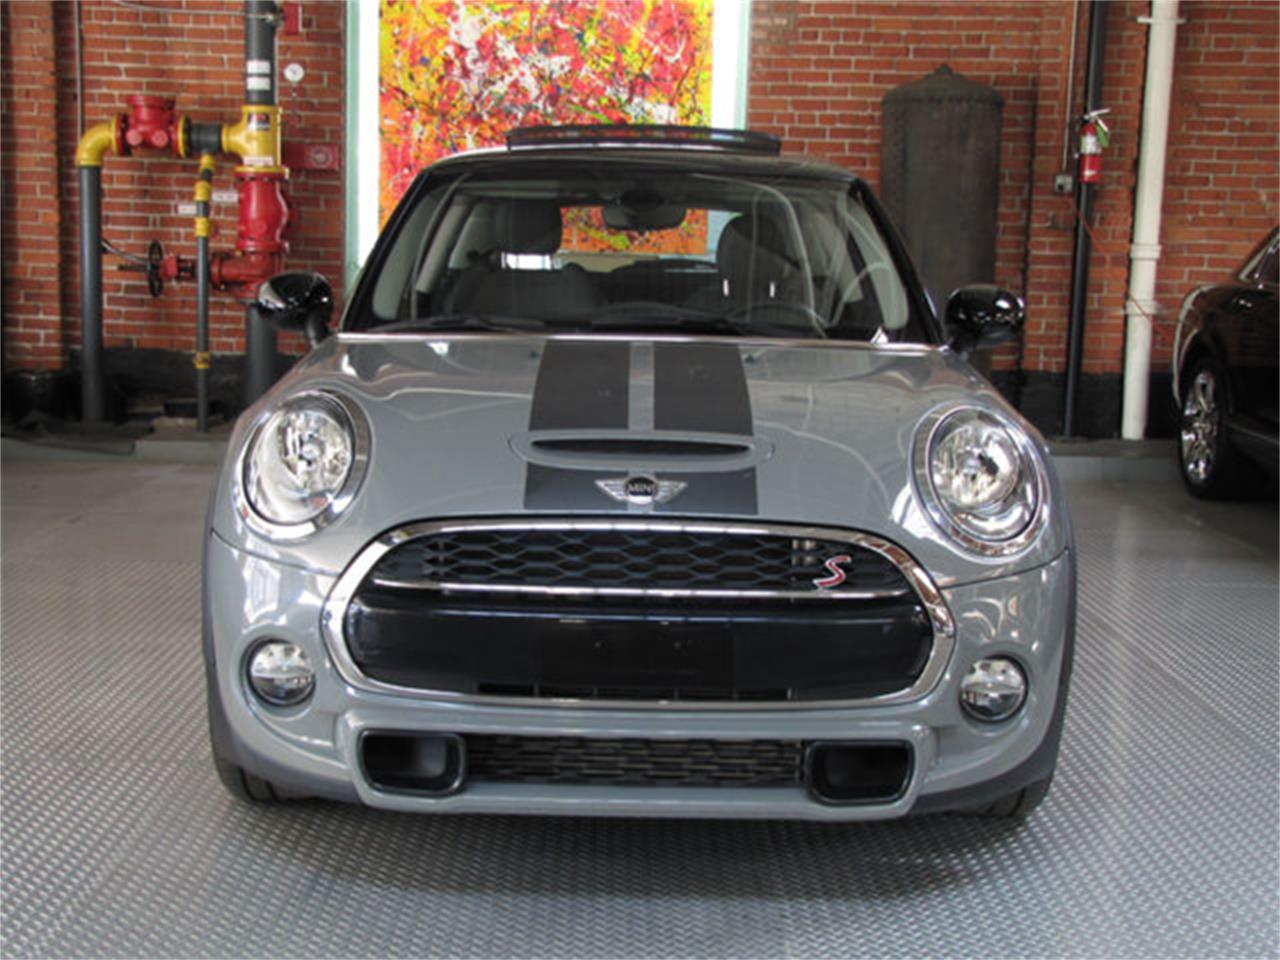 2015 MINI Cooper S (CC-1145806) for sale in Hollywood, California